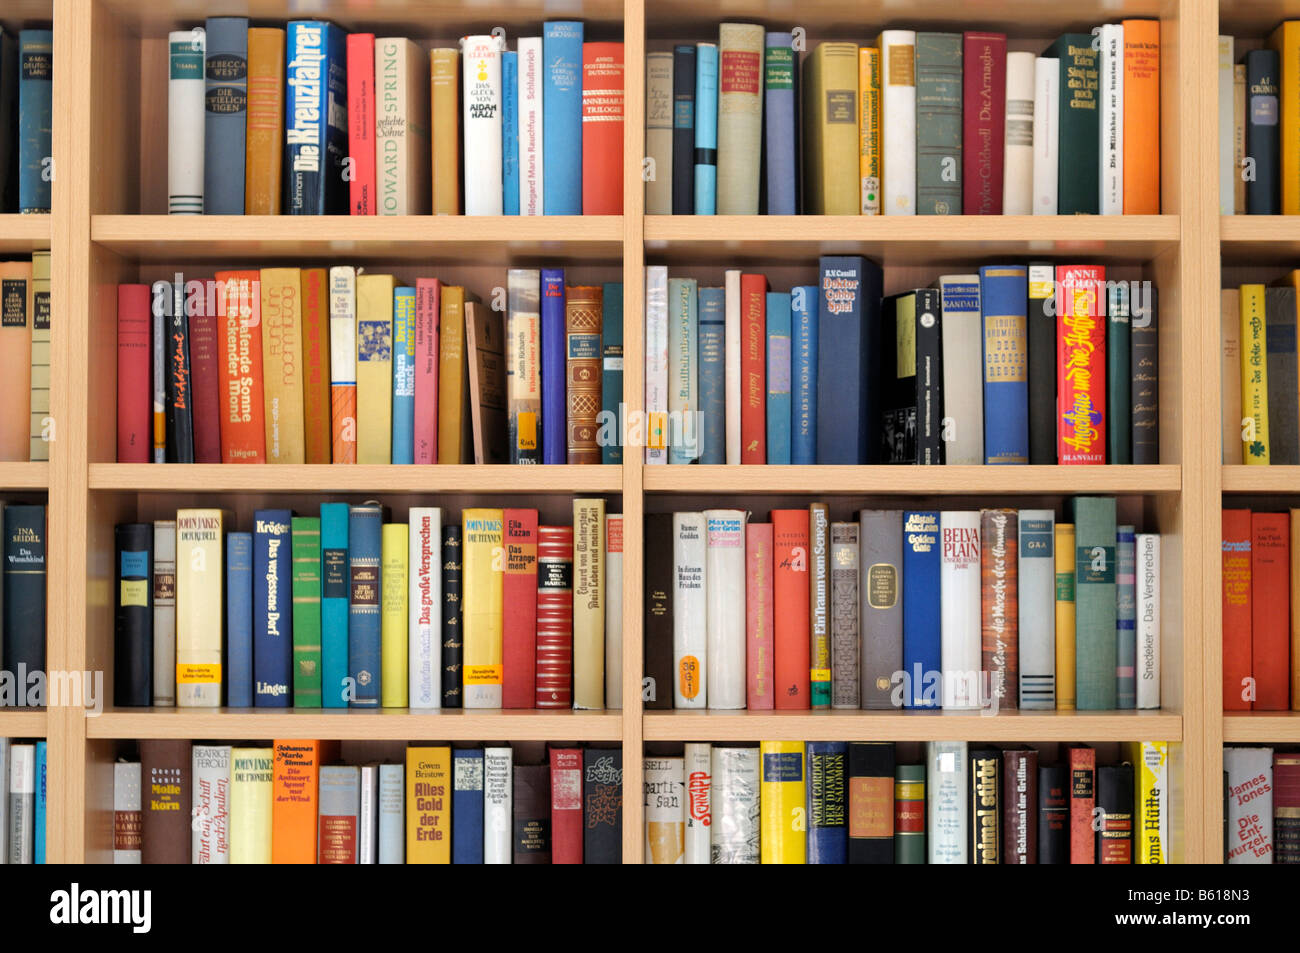 bookshelf stockfotos bookshelf bilder alamy. Black Bedroom Furniture Sets. Home Design Ideas